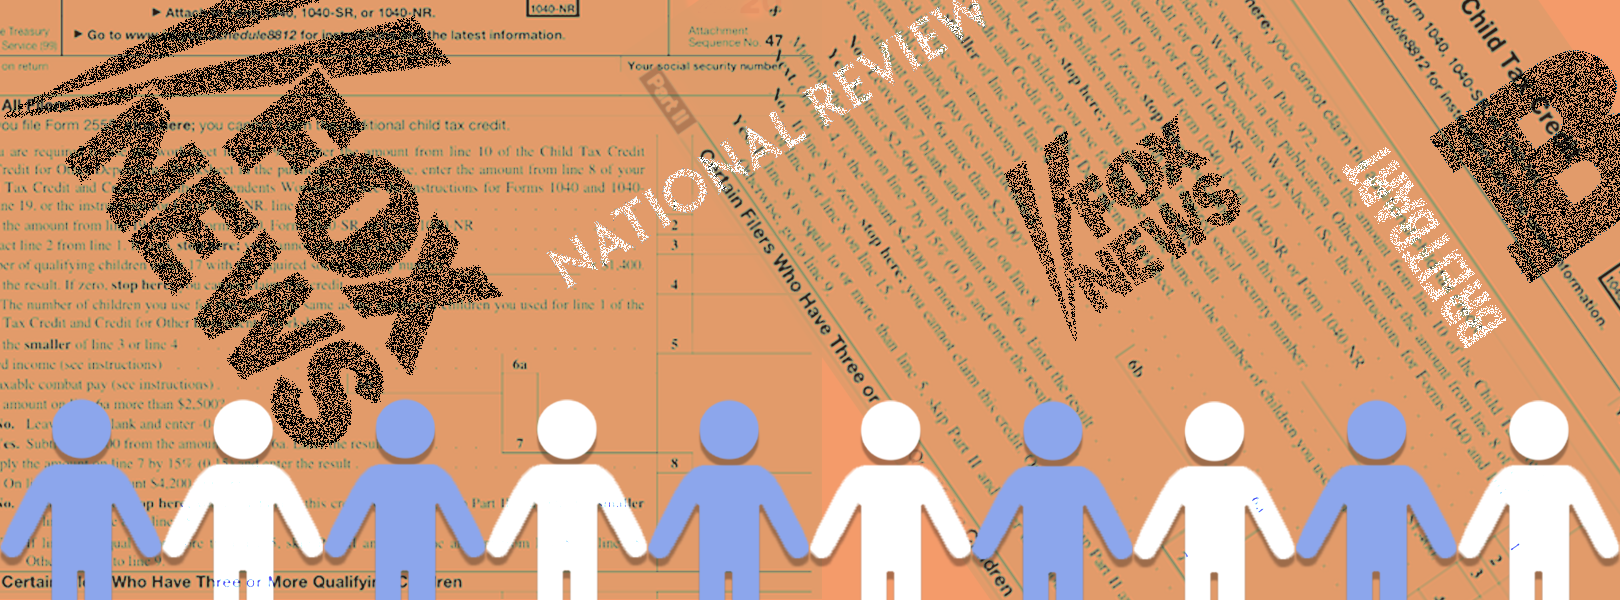 Graphics of children line the bottom of headlines and logos of right-wing media organizations